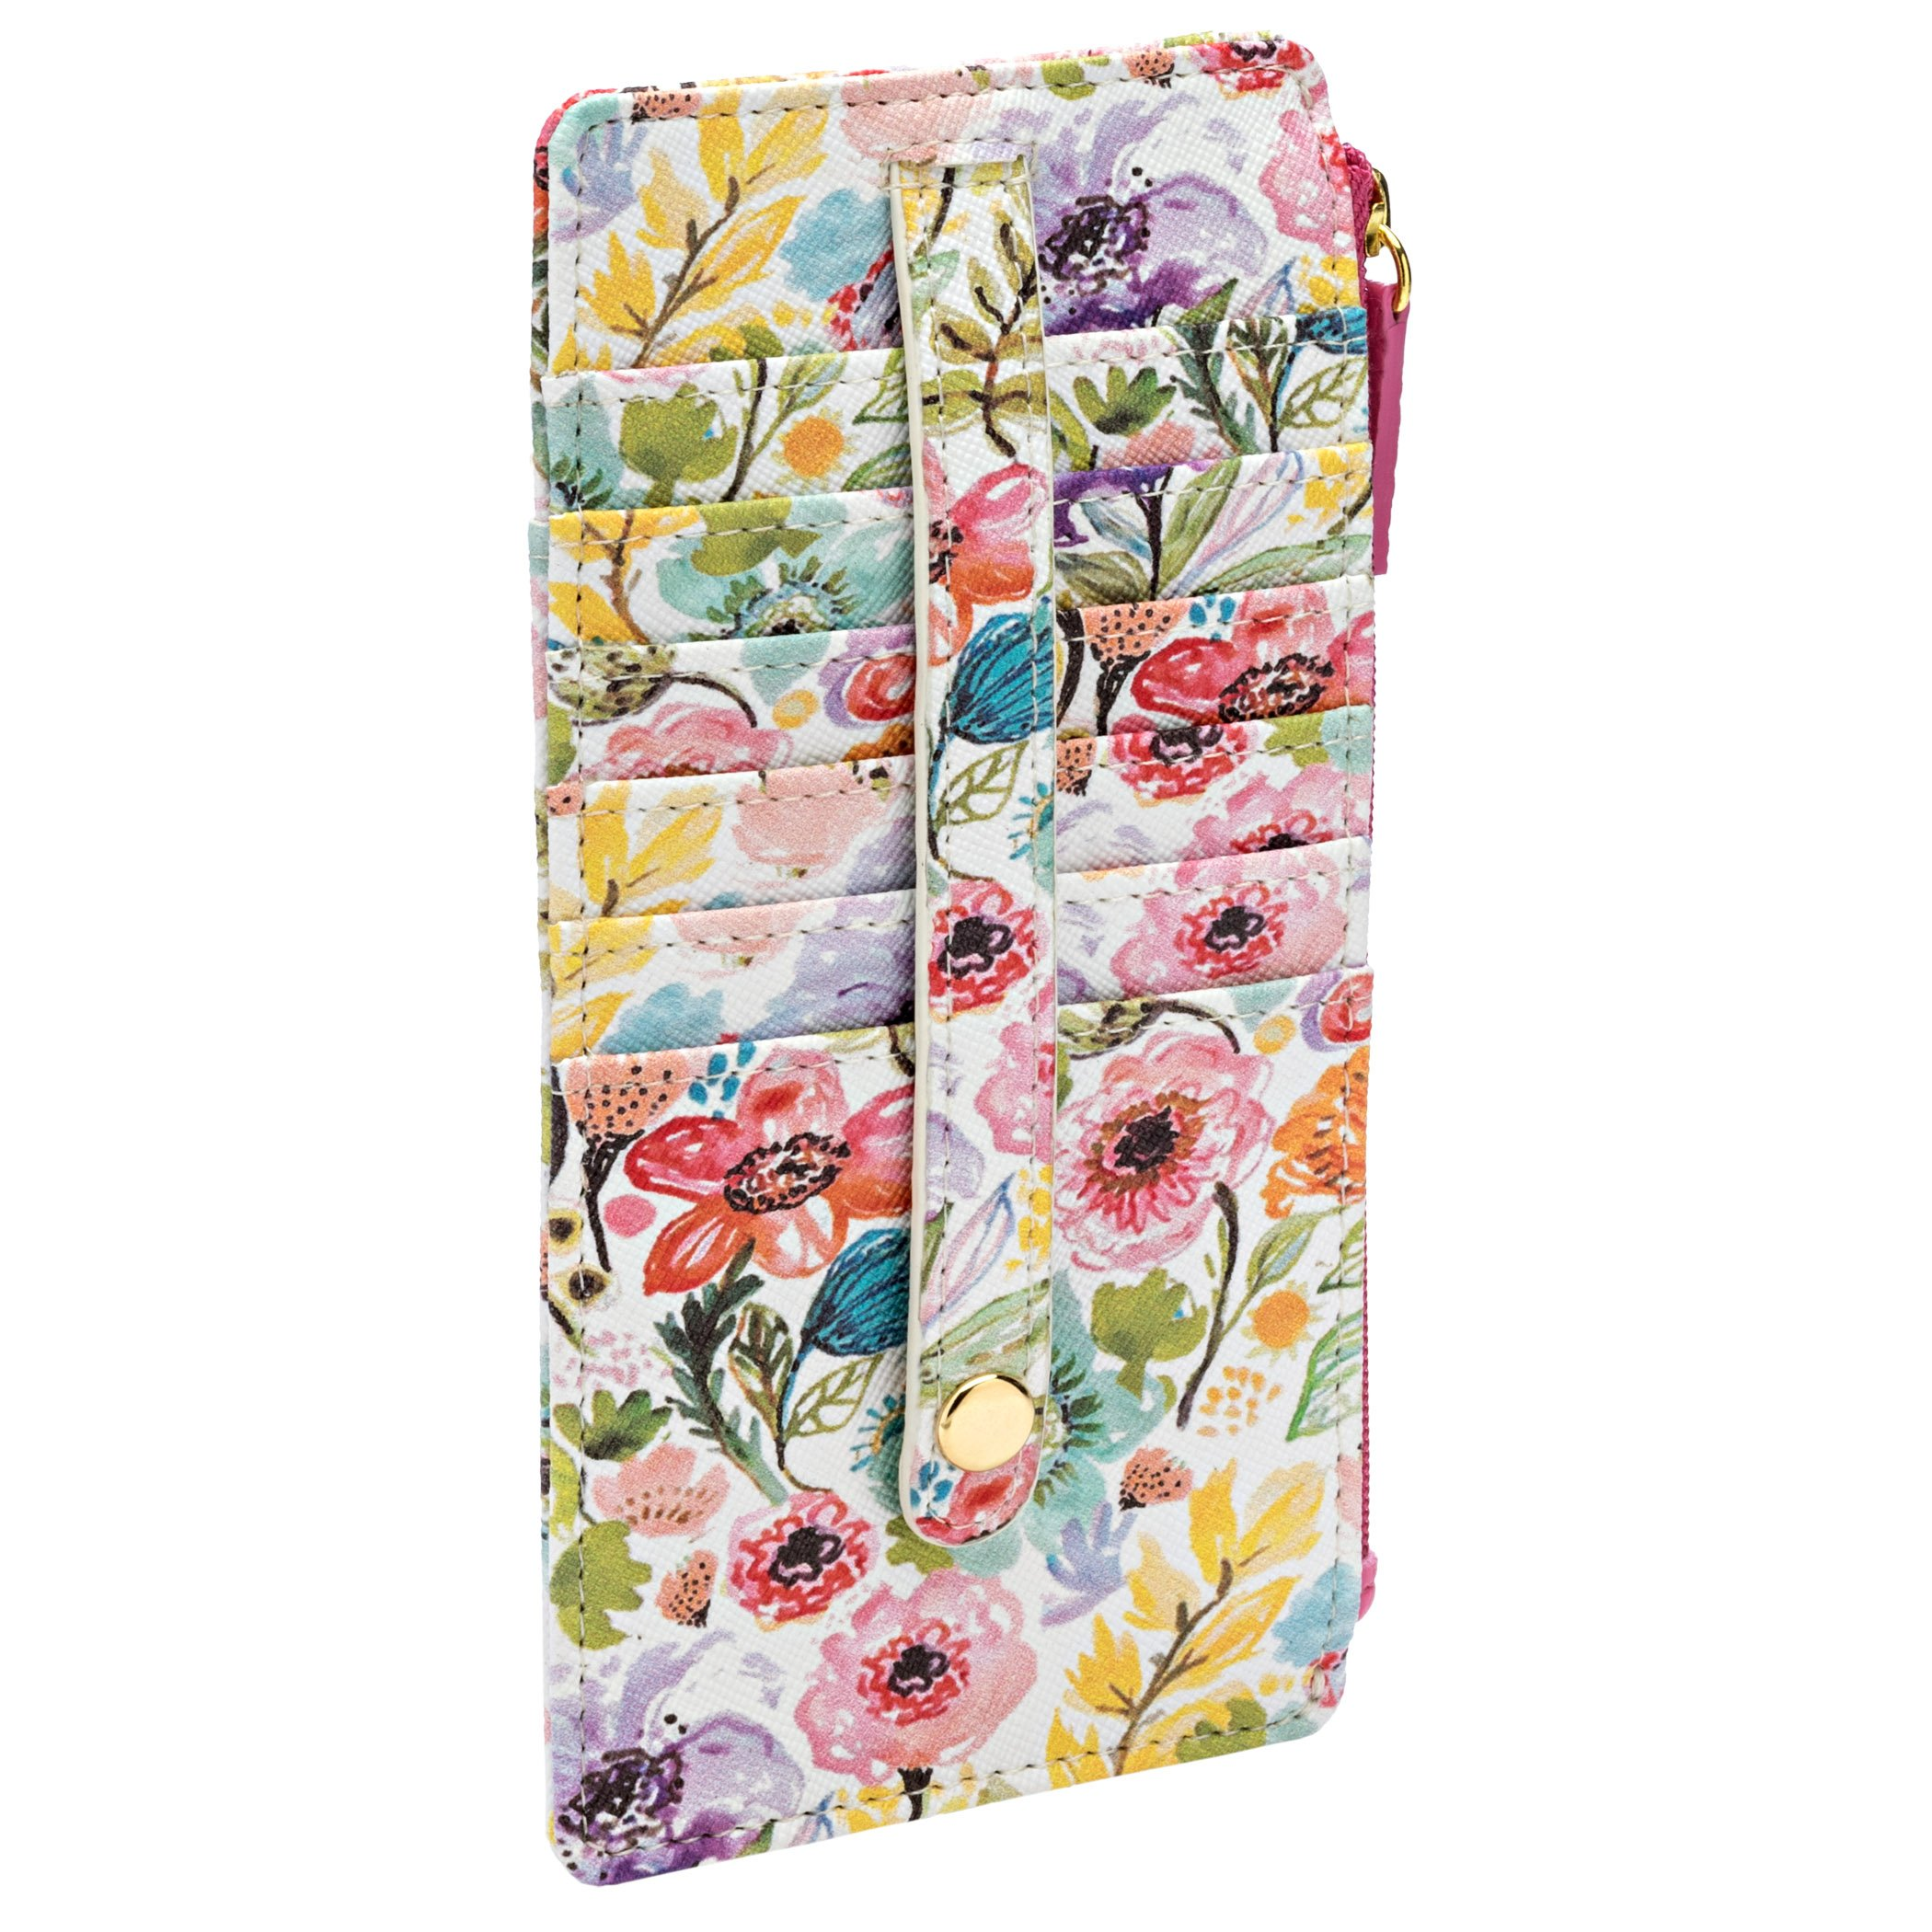 Buxton Womens Leather 3 in 1 Thin Credit Card Case Wallet/Change Purse/Id Holder (Petite Floral)